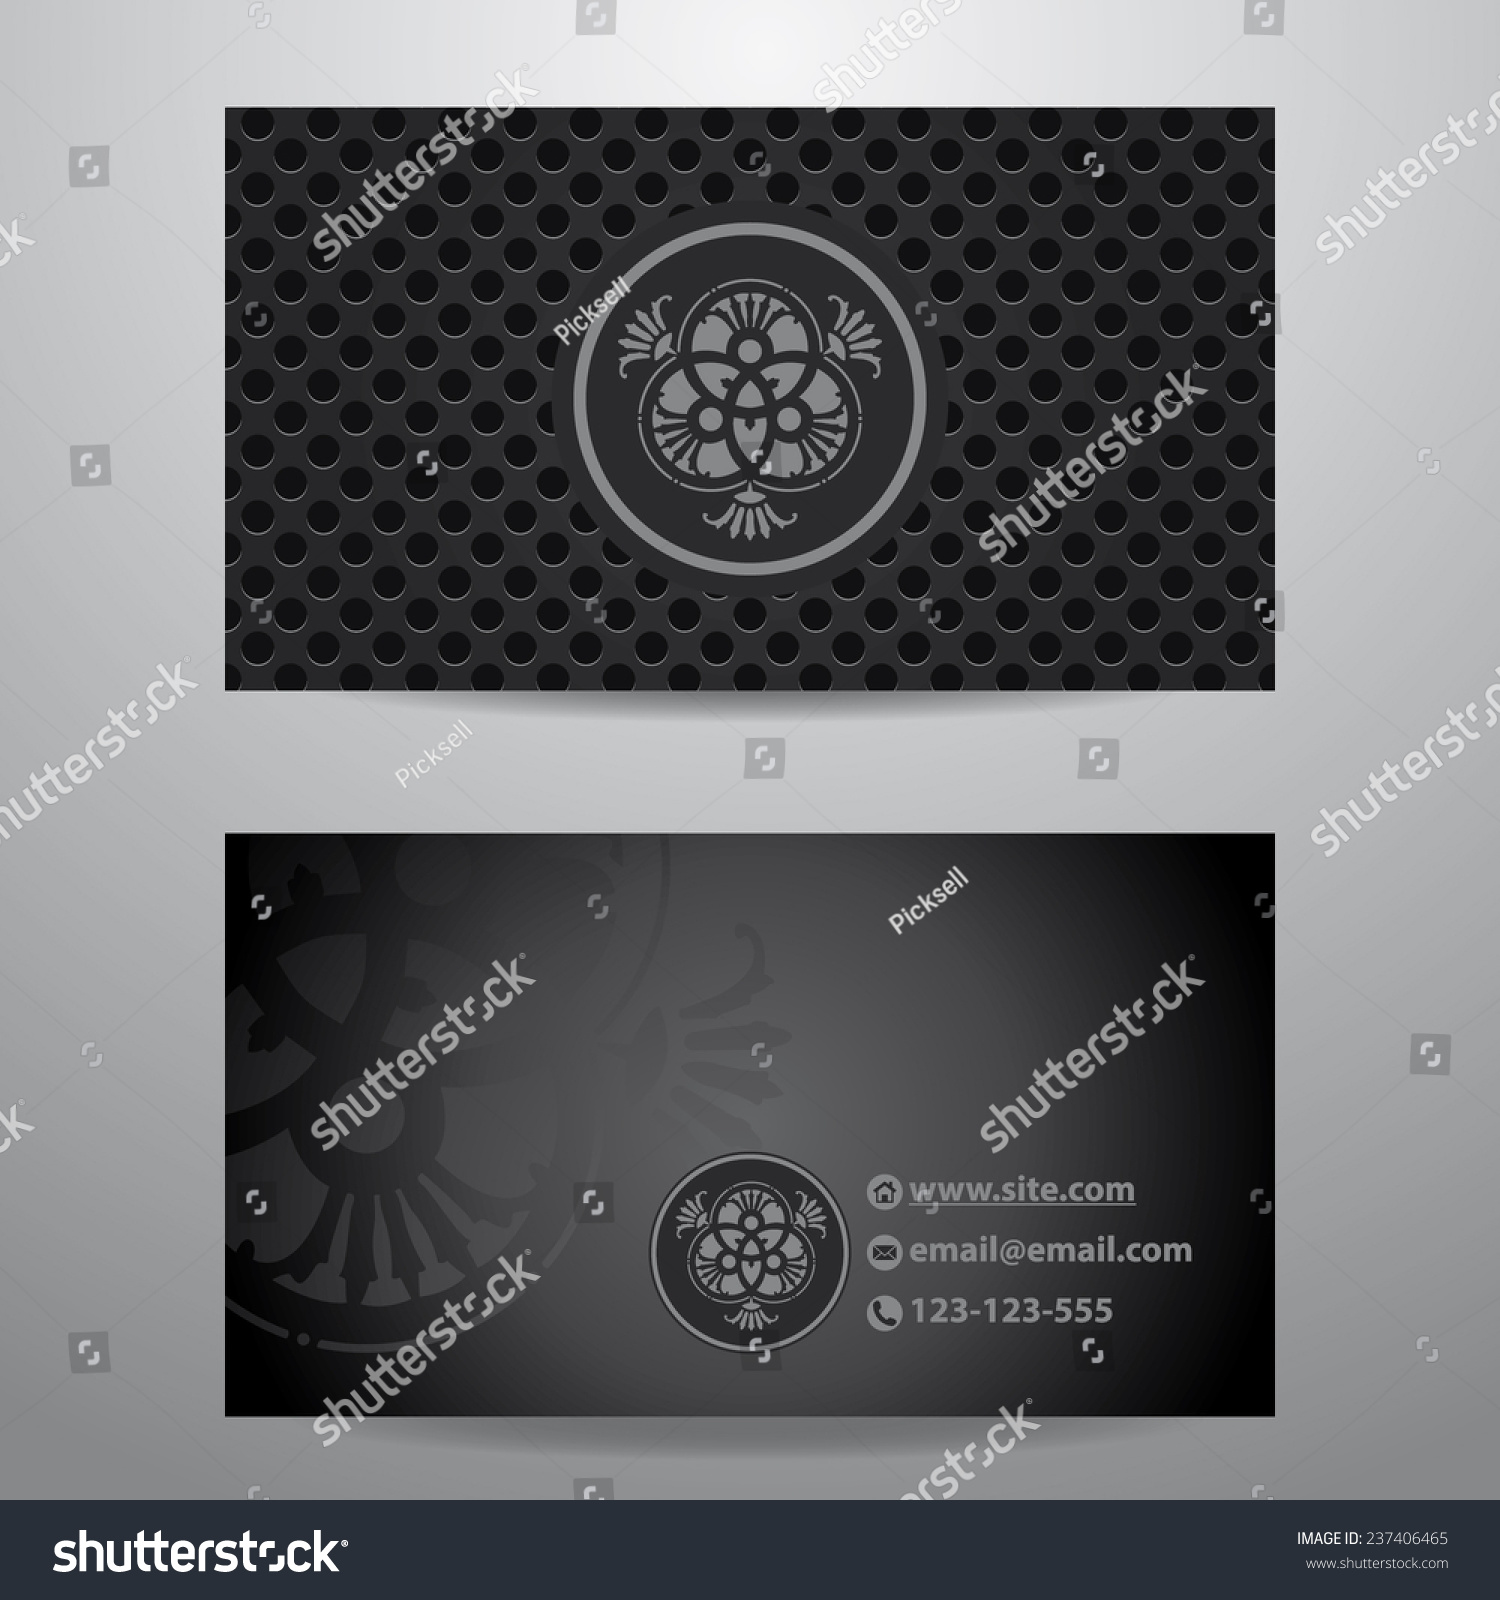 Dark Carbon Fiber Business Card Template Stock Vector 237406465 ...